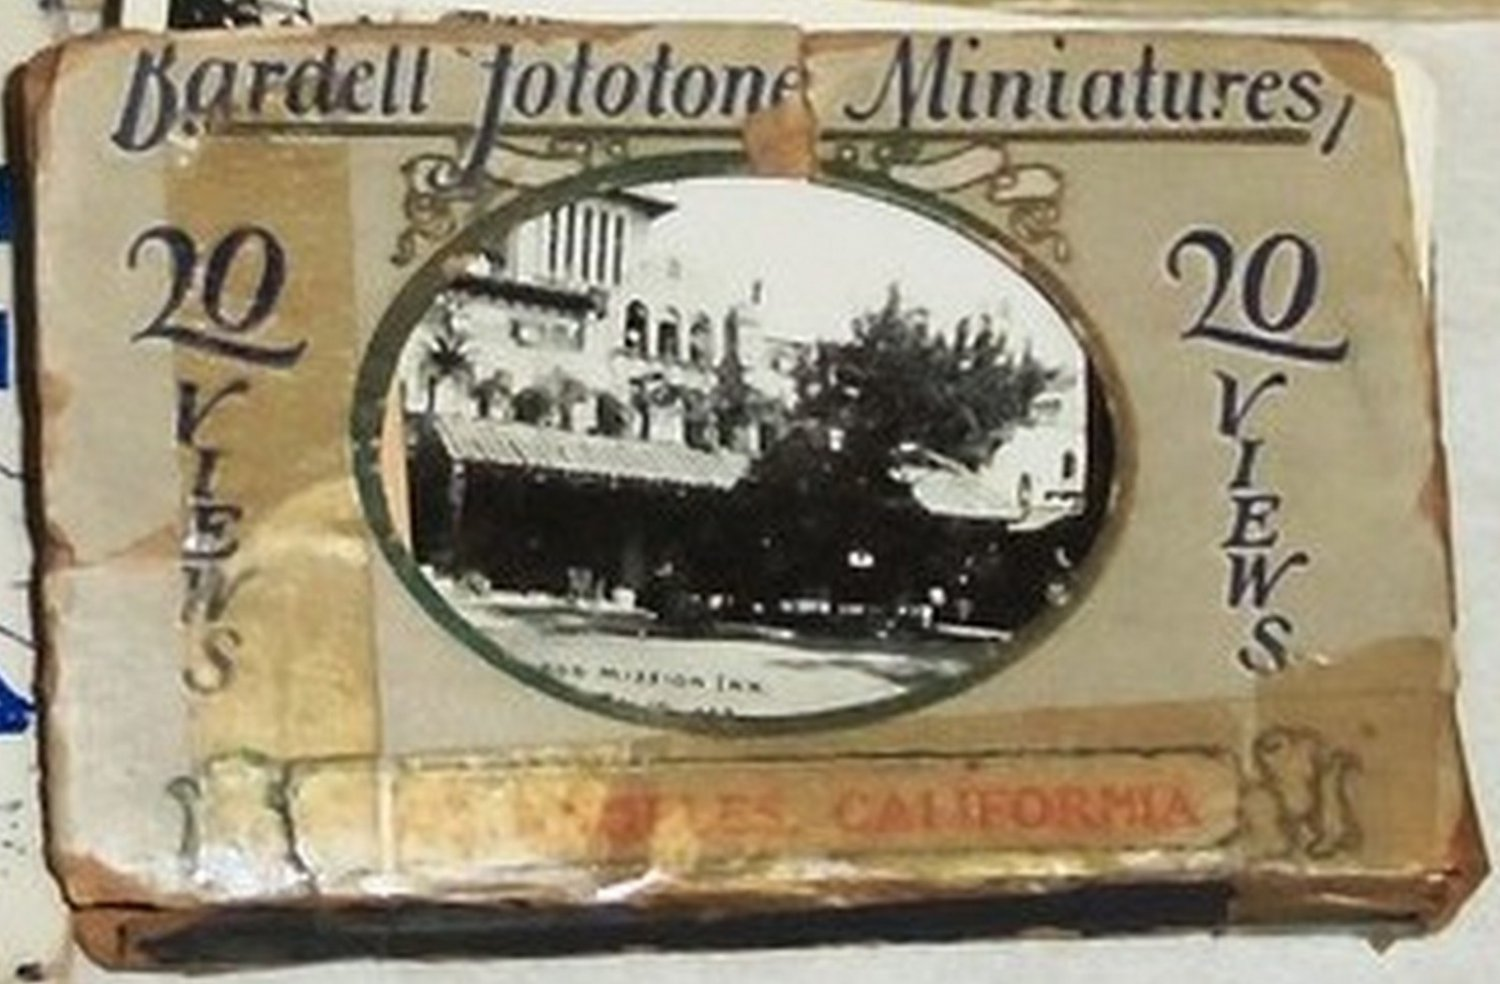 1922 Bardell Fototone Miniatures Los Angeles 20 Views